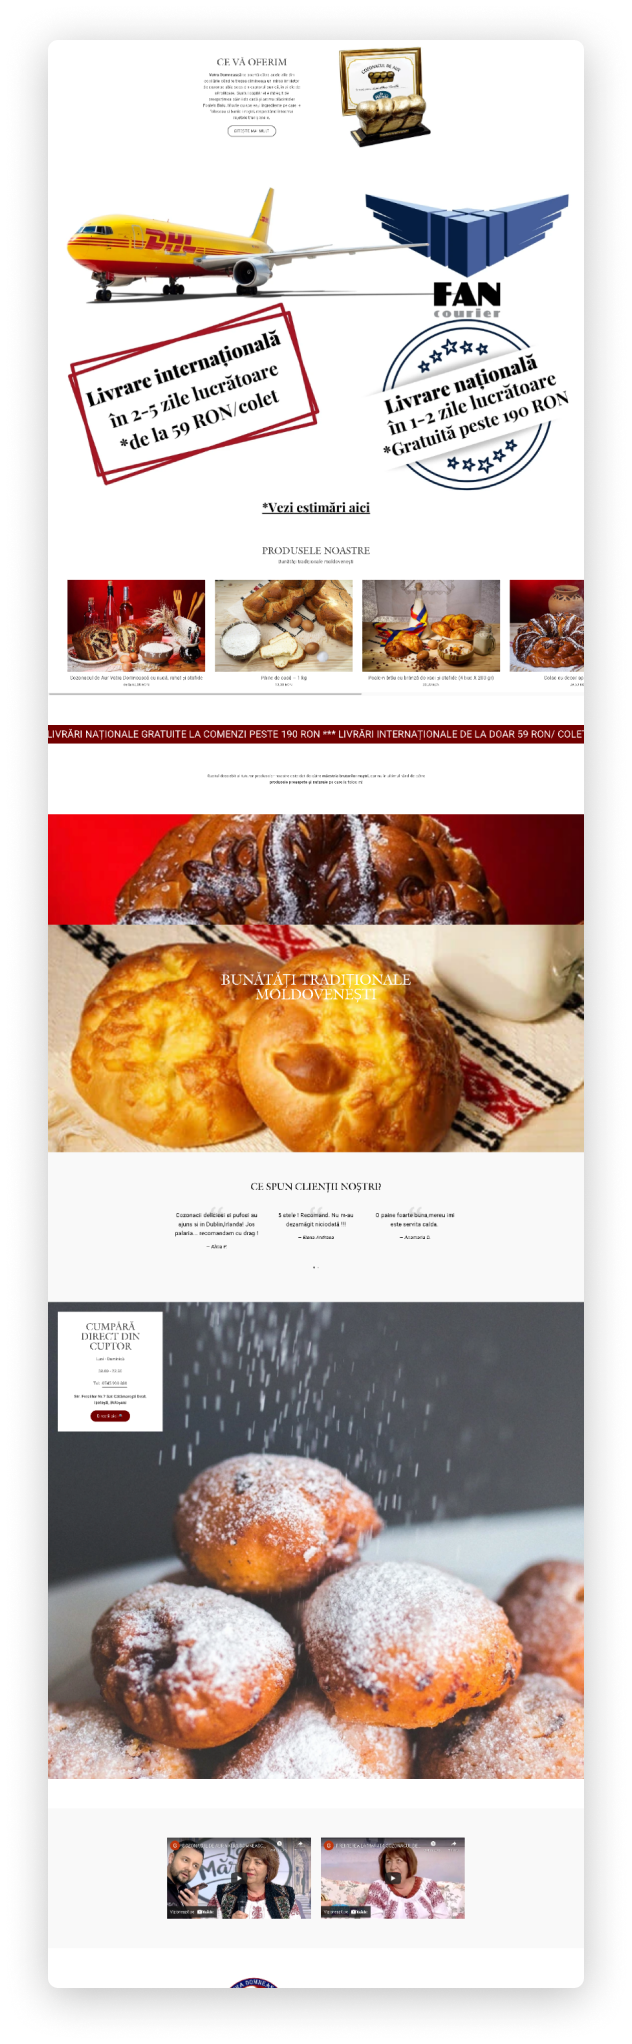 An image representing a homepage of a website